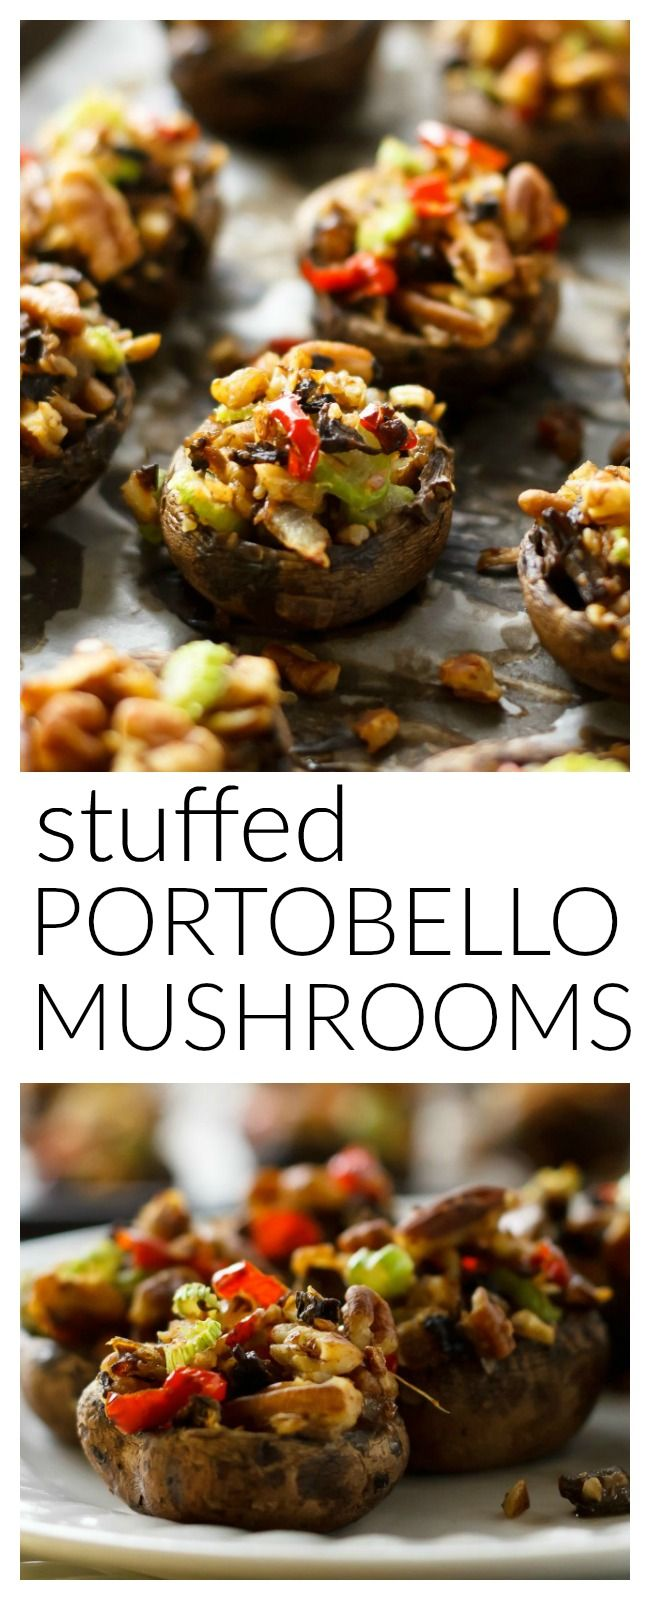 Vegan Stuffed Mushrooms | big flavor, simple ingredients | #vegan #cleaneating #glutenfree | eat healthy eat happy